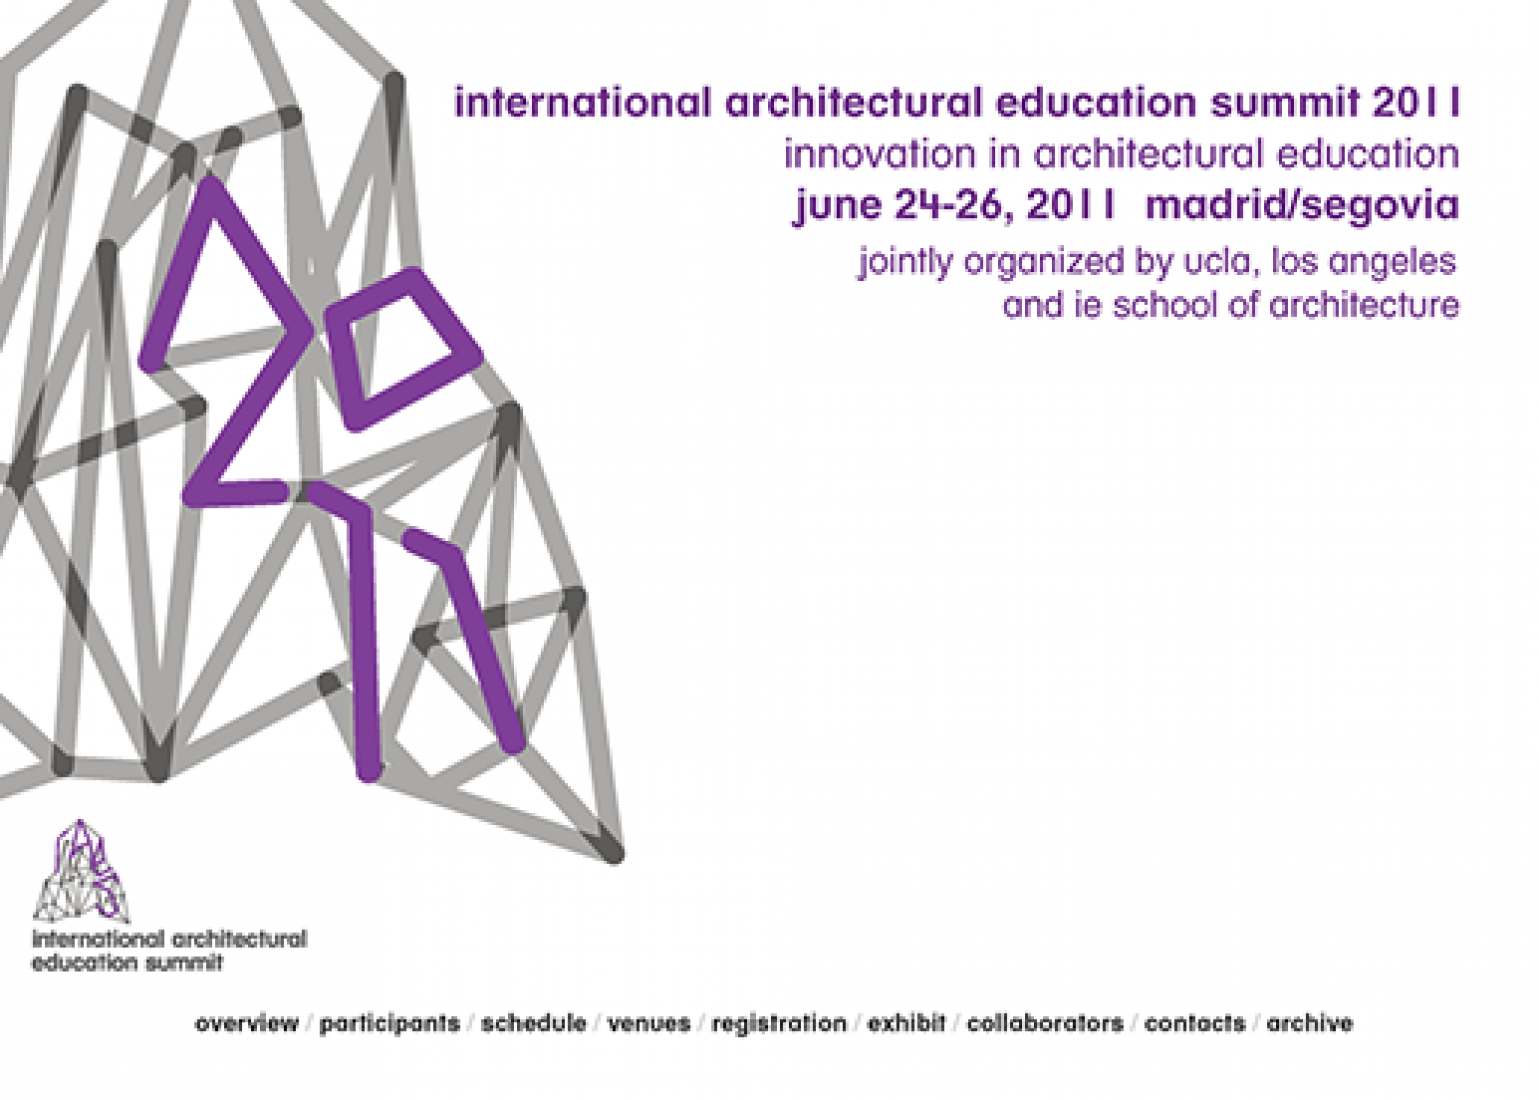 International Architectural Education Summit 2011.